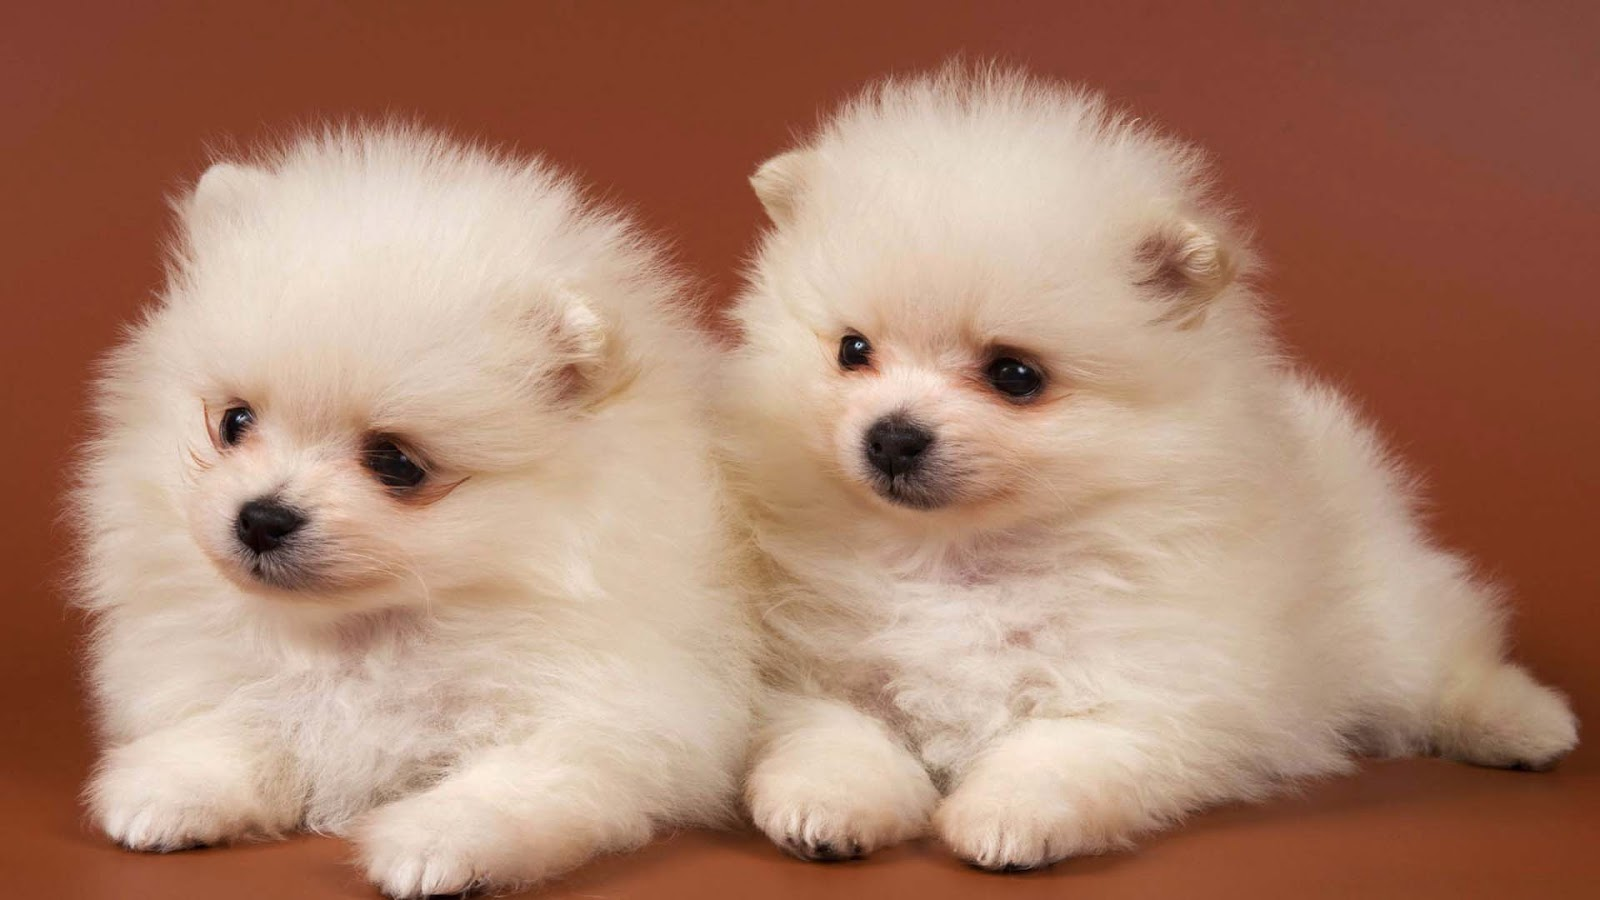 Pomeranian Puppies Wallpapers Cute Puppy Wallpapers For Computer 1600x900 Download Hd Wallpaper Wallpapertip